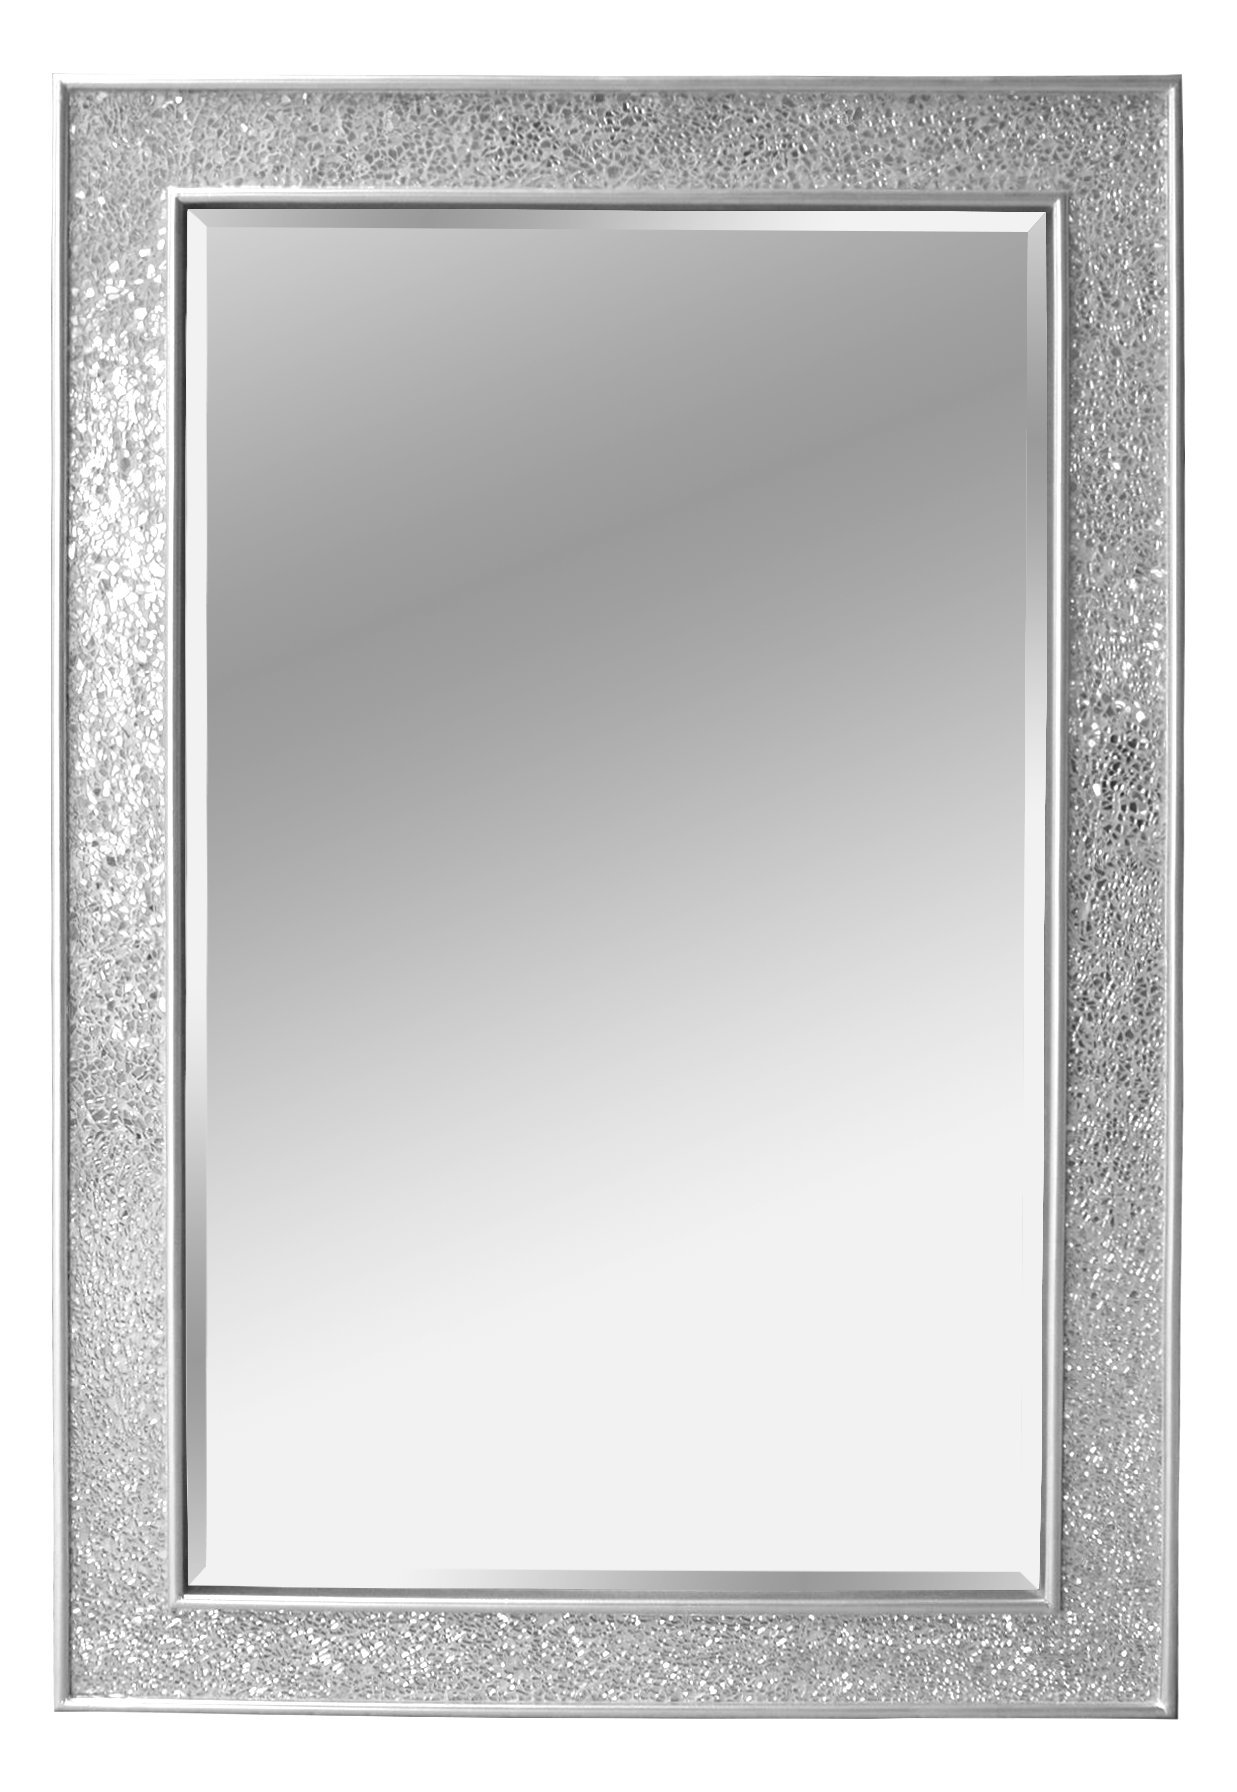 Mosaic silver wall mirror large 90x60 centimeters for Mirror 90 x 60